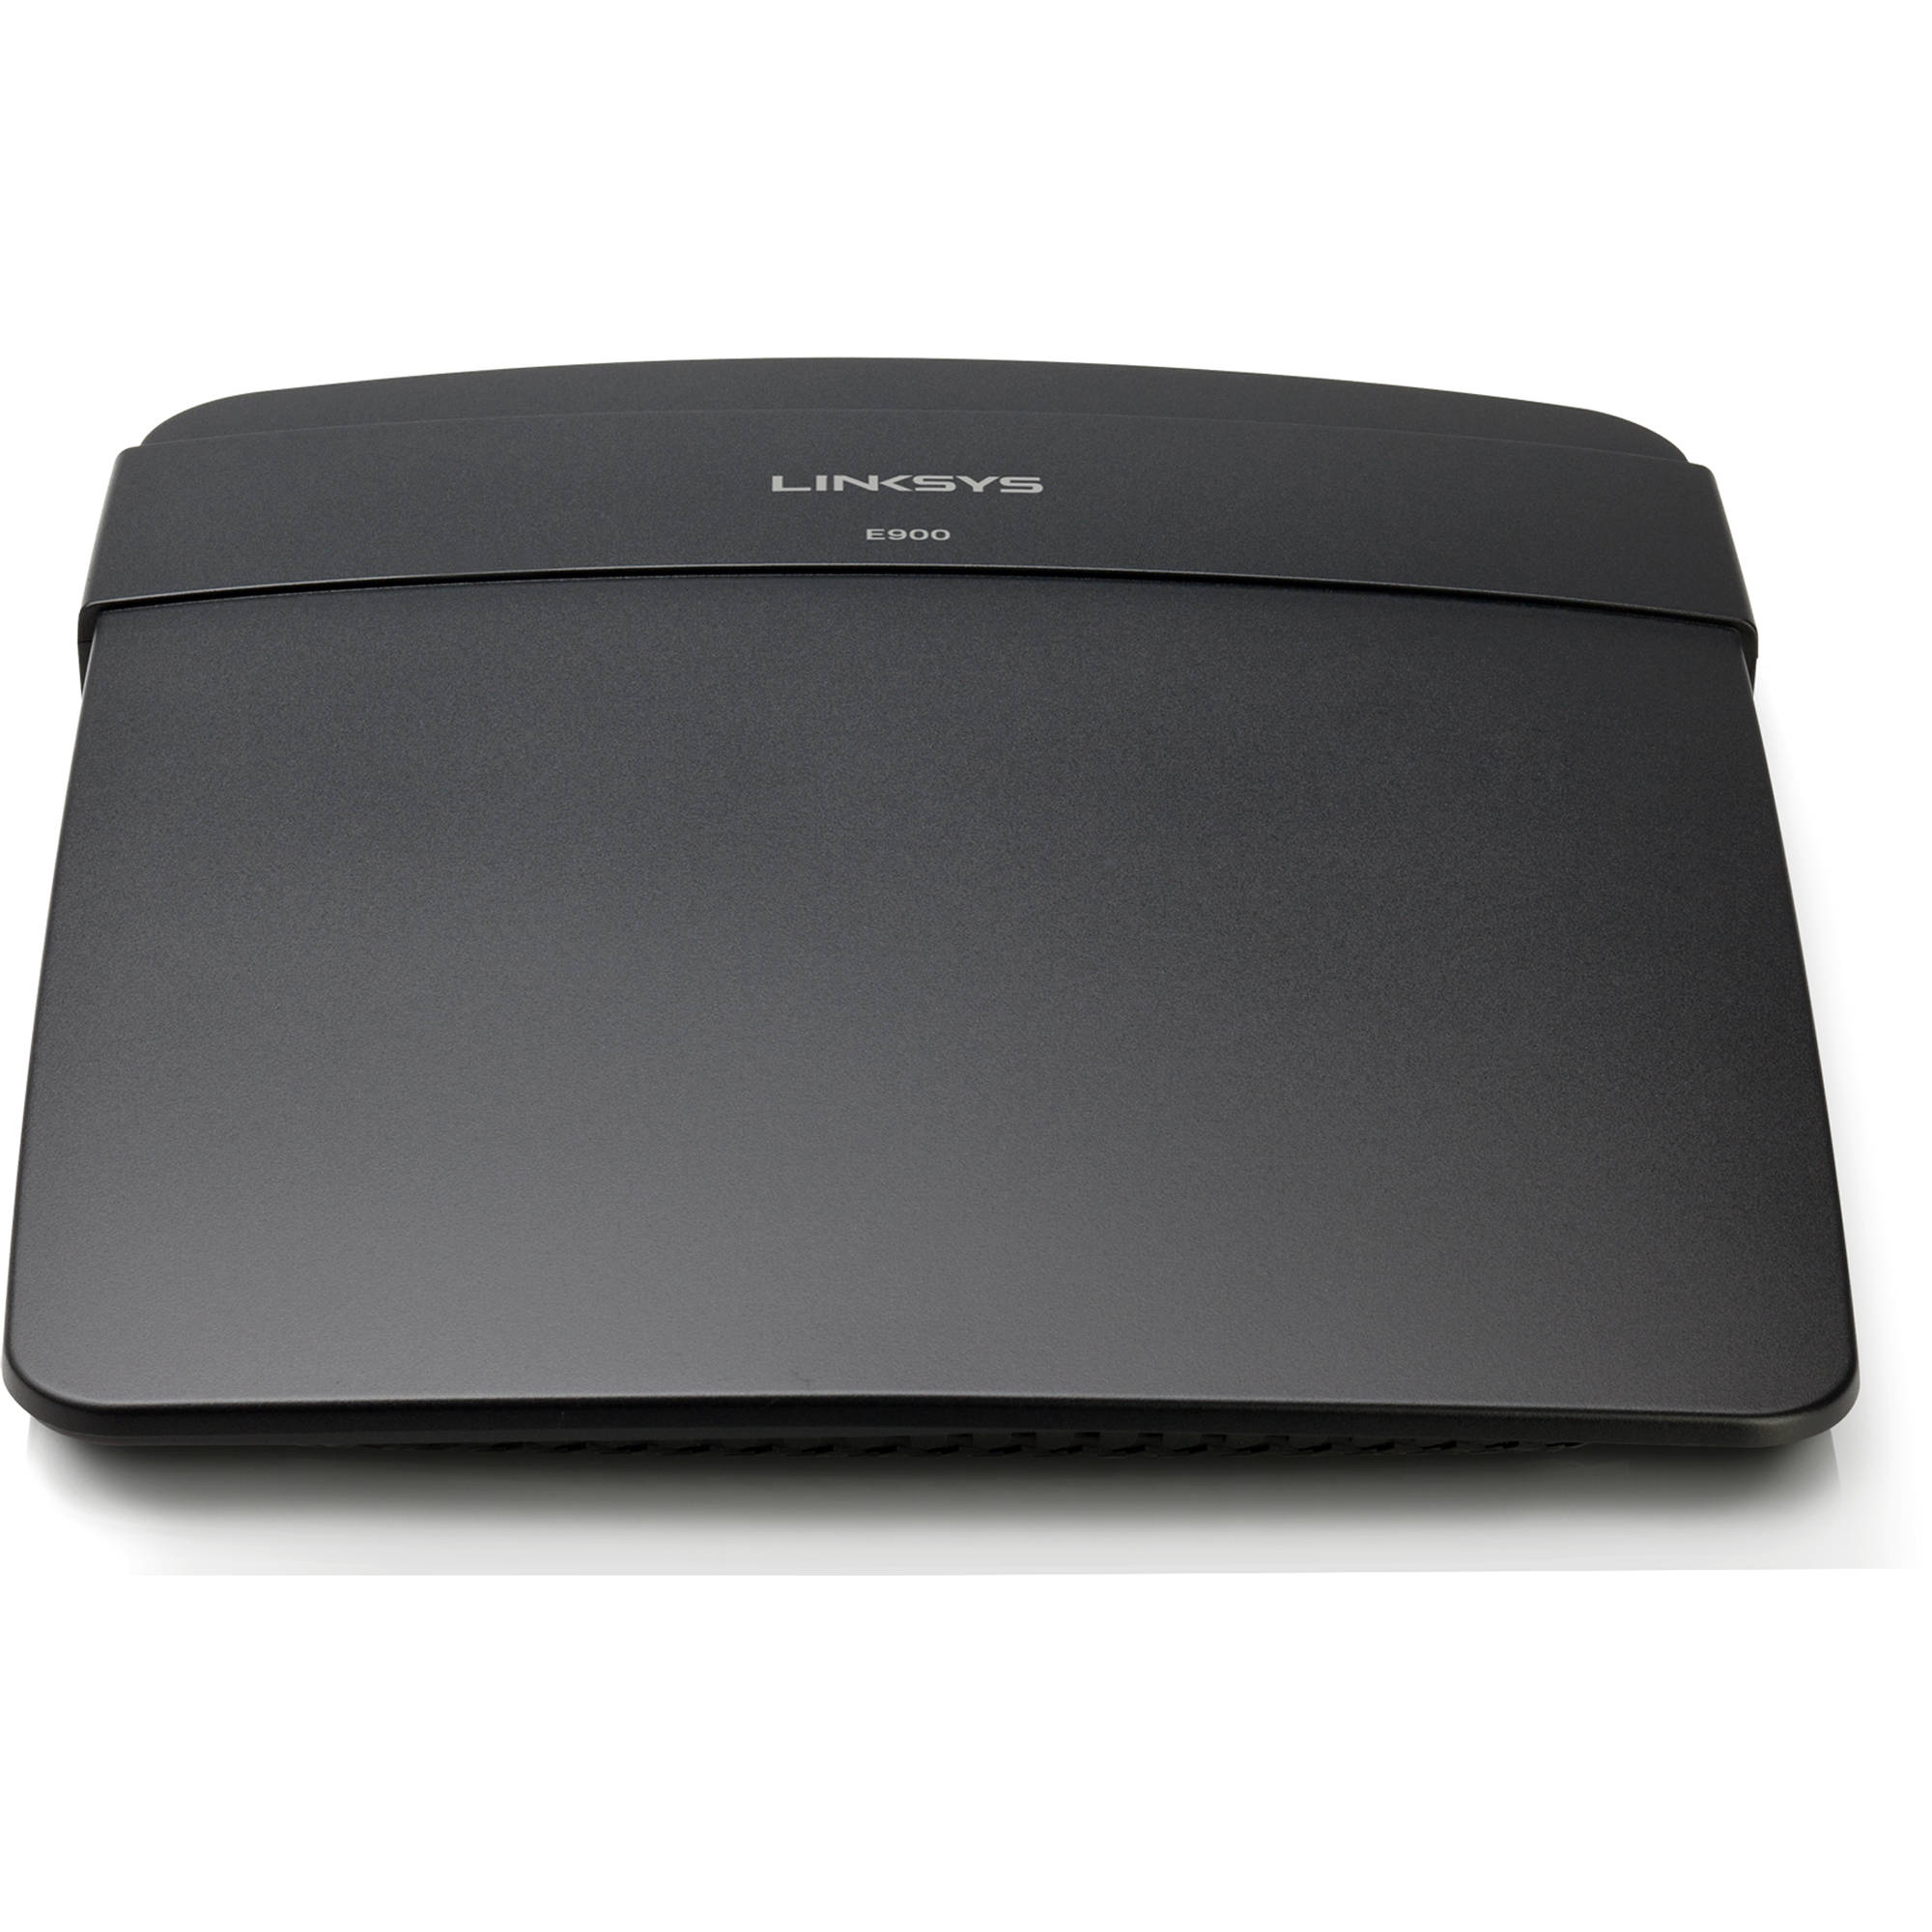 Linksys e series e900 wireless n300 router e900 np bh photo linksys e series e900 wireless n300 router greentooth Gallery